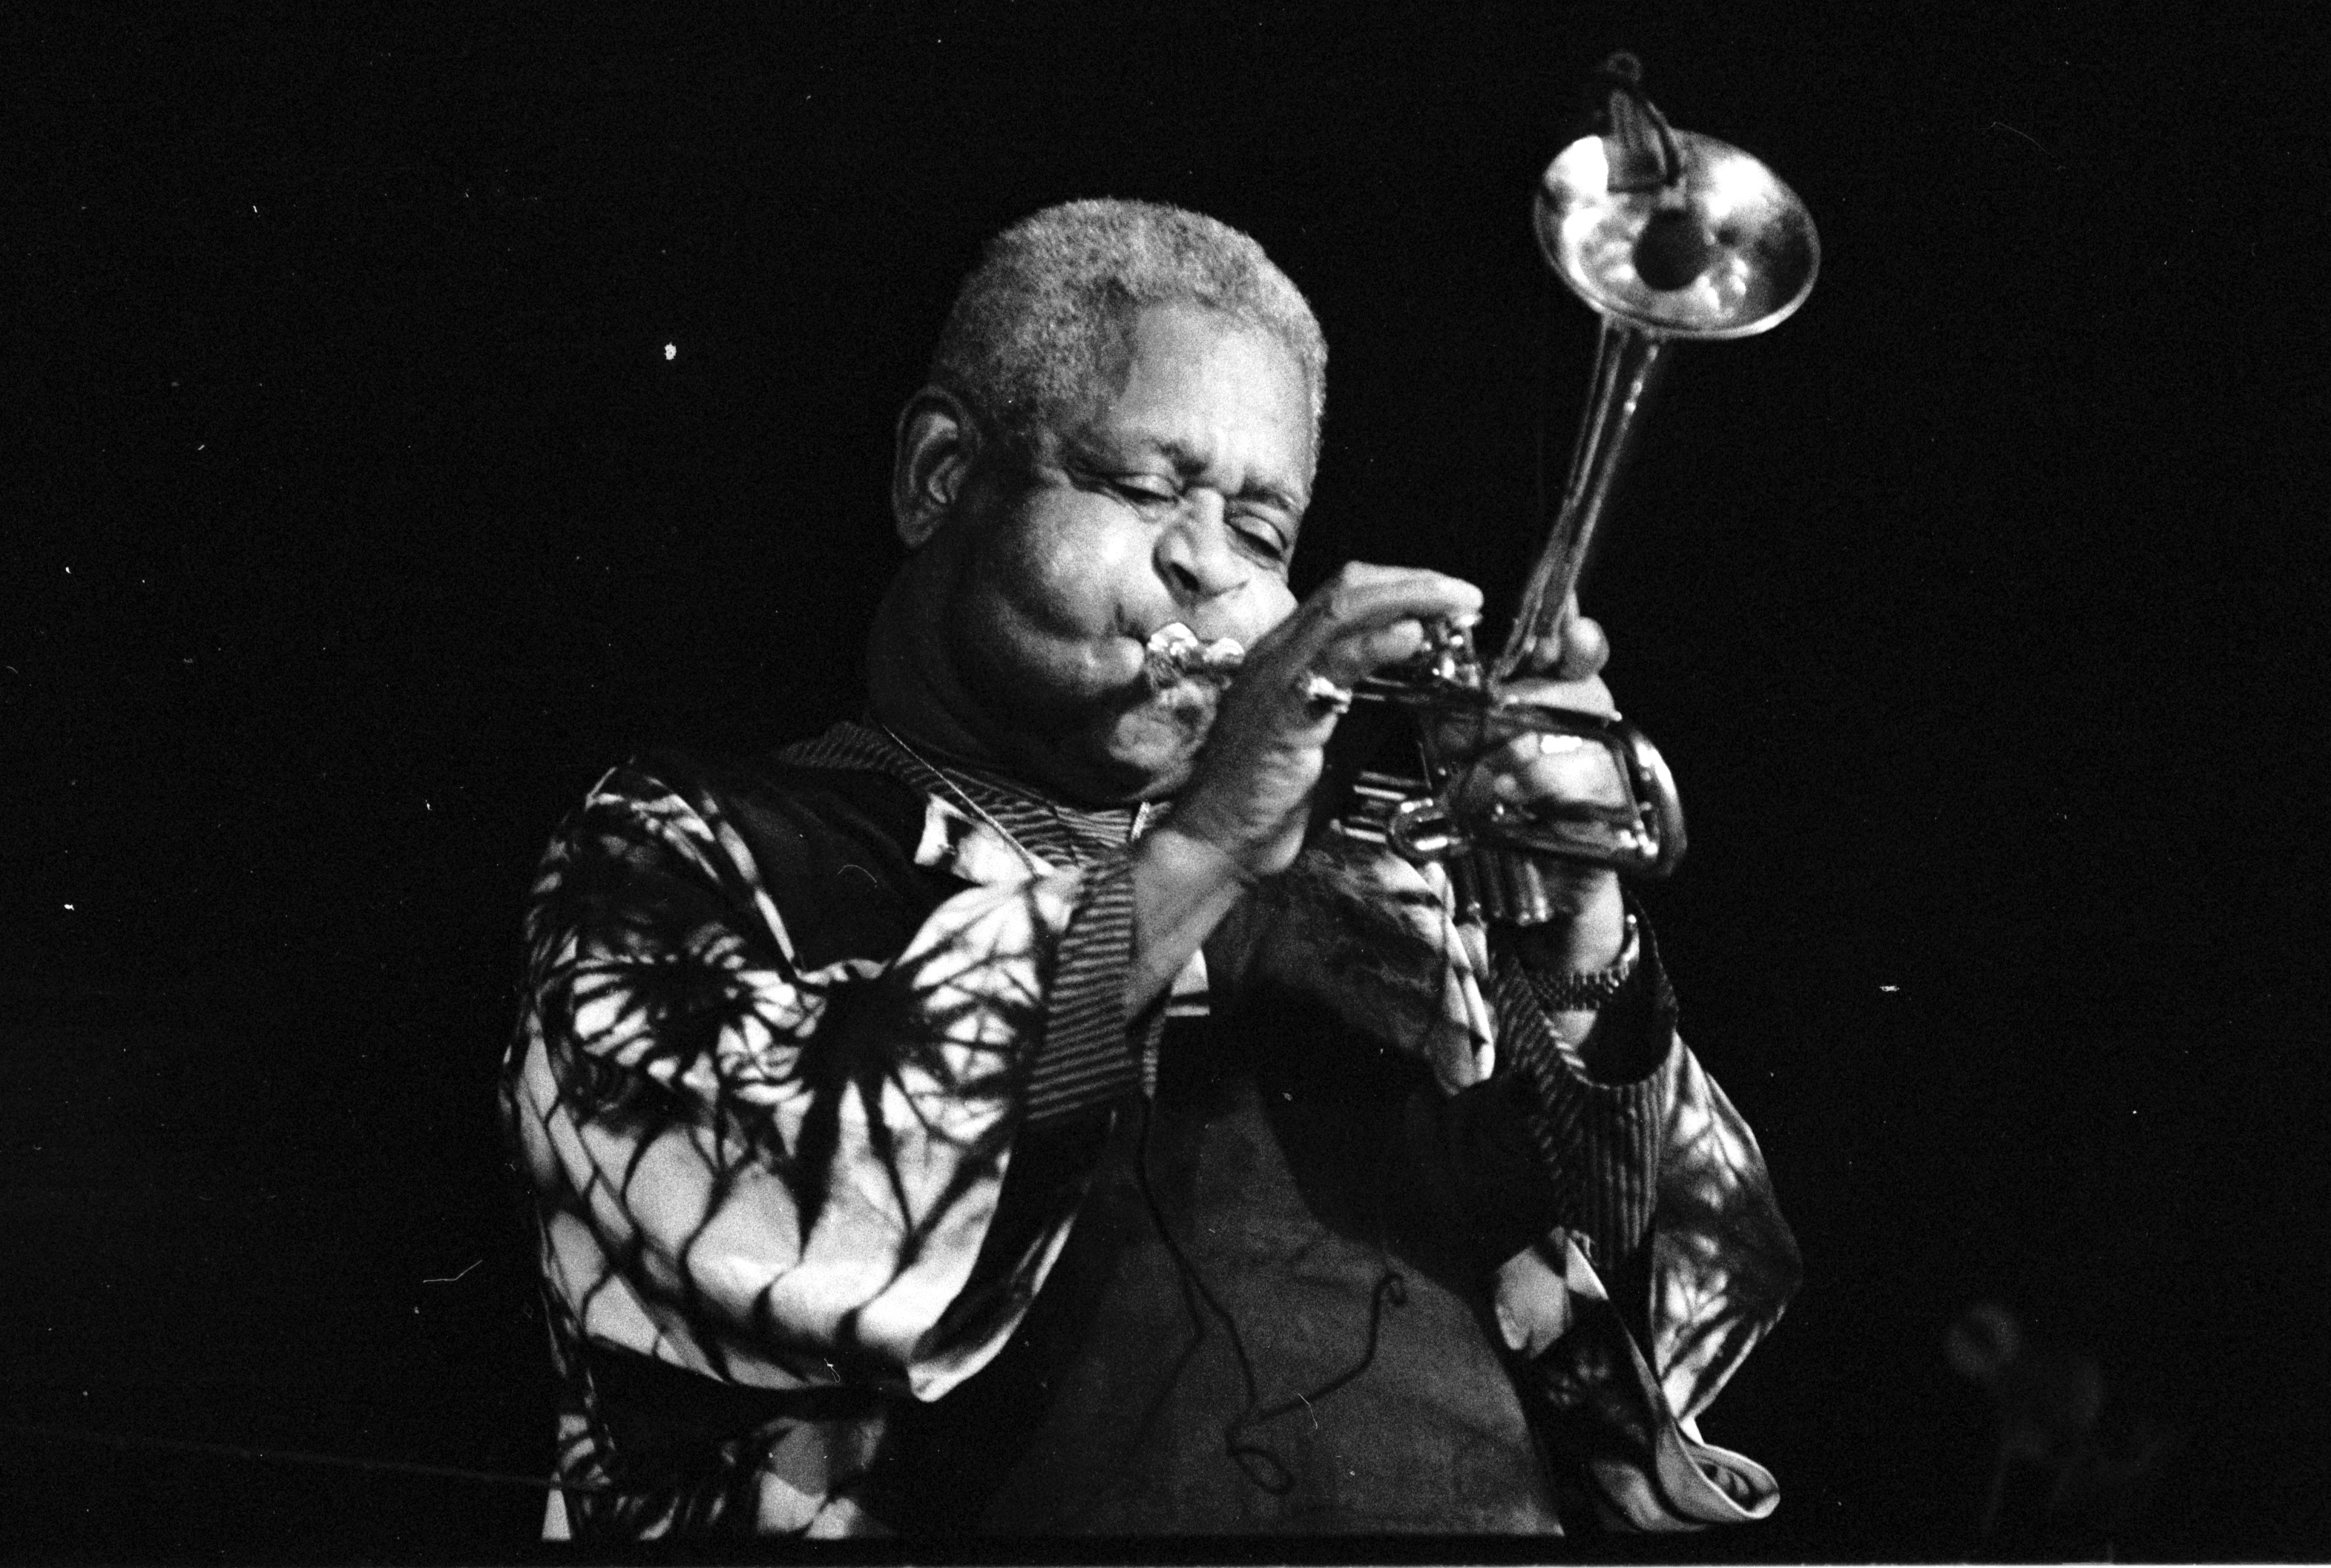 Depiction of Dizzy Gillespie